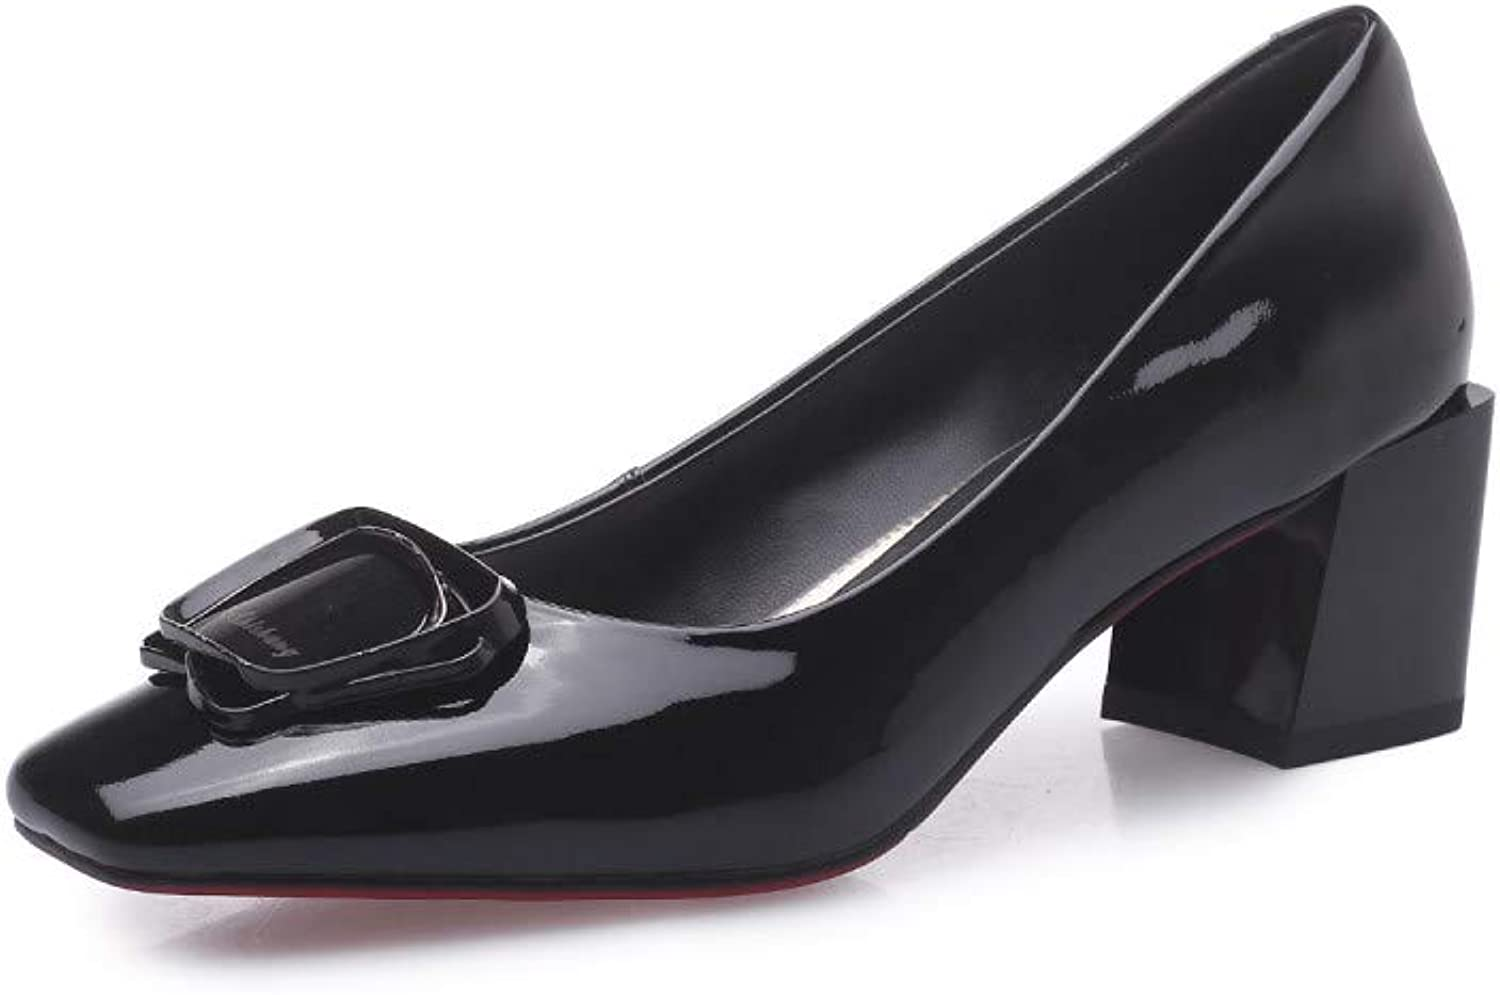 Nine Seven Women's Patent Leather Closed Square Toe Mid Chunky Heel Handmade Casual Comfort Work Dress Pumps